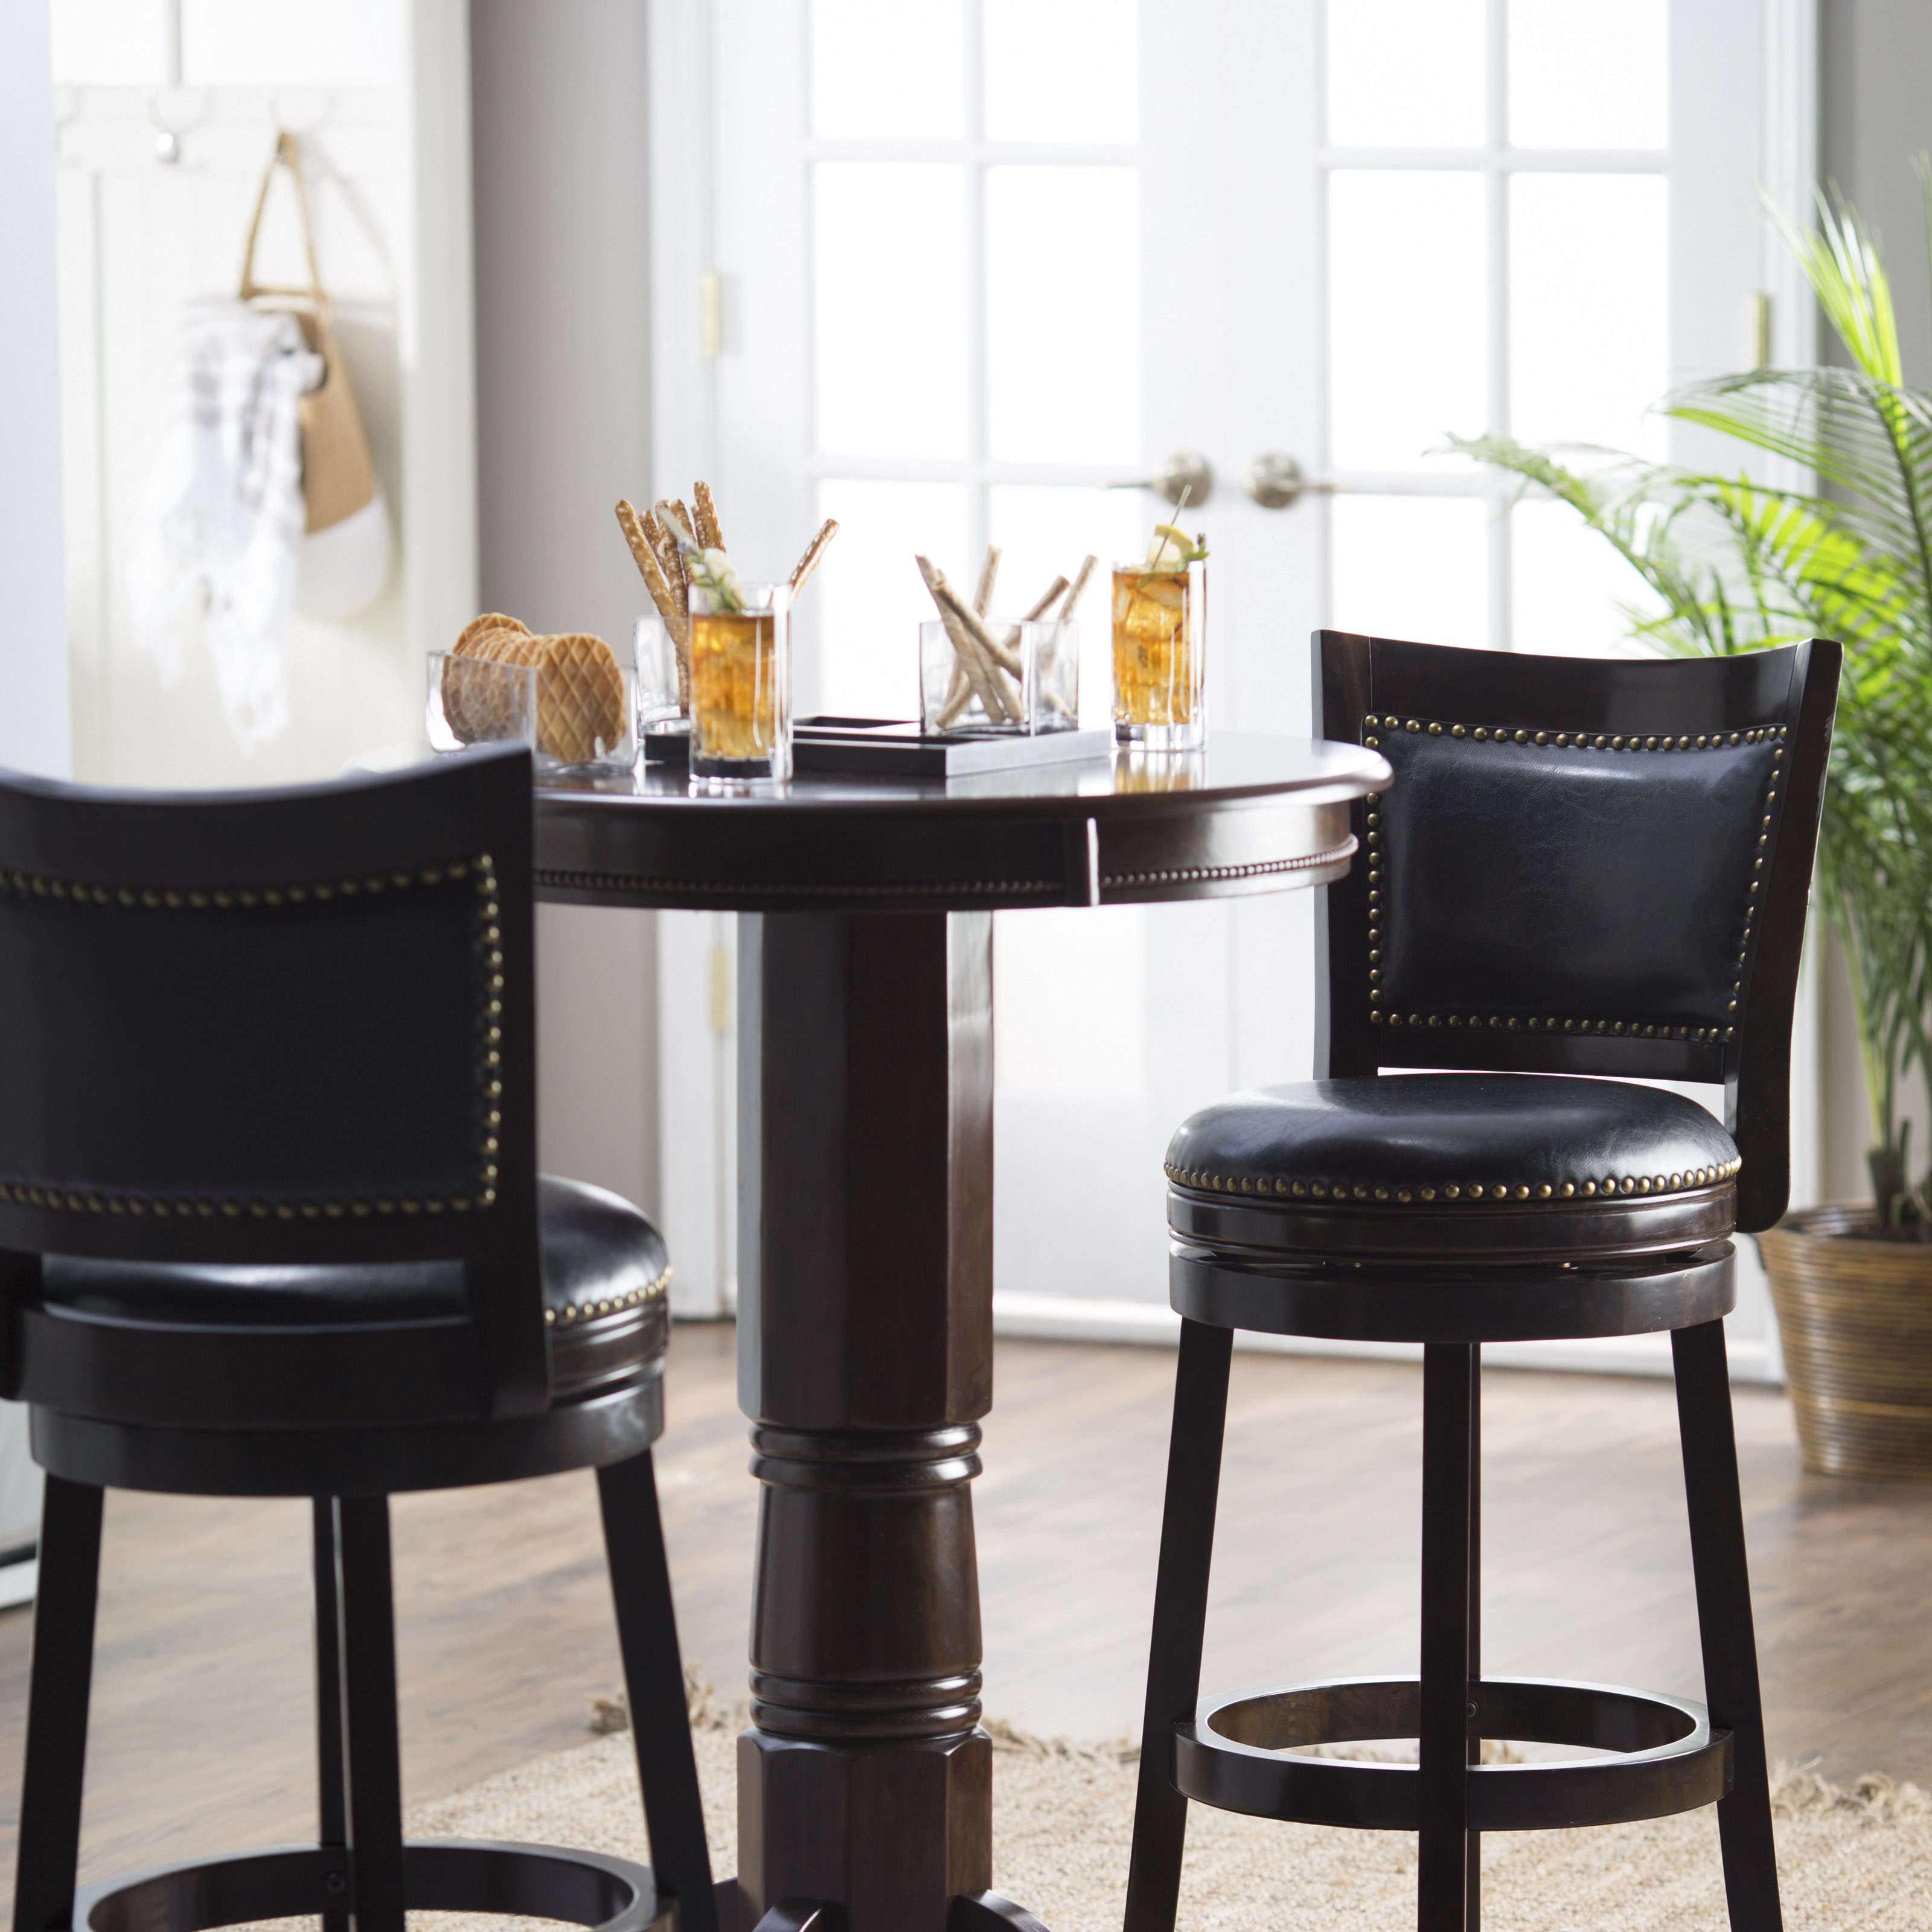 Luxury pub table and chairs finley home milano pub table | hayneedle eaeuirx